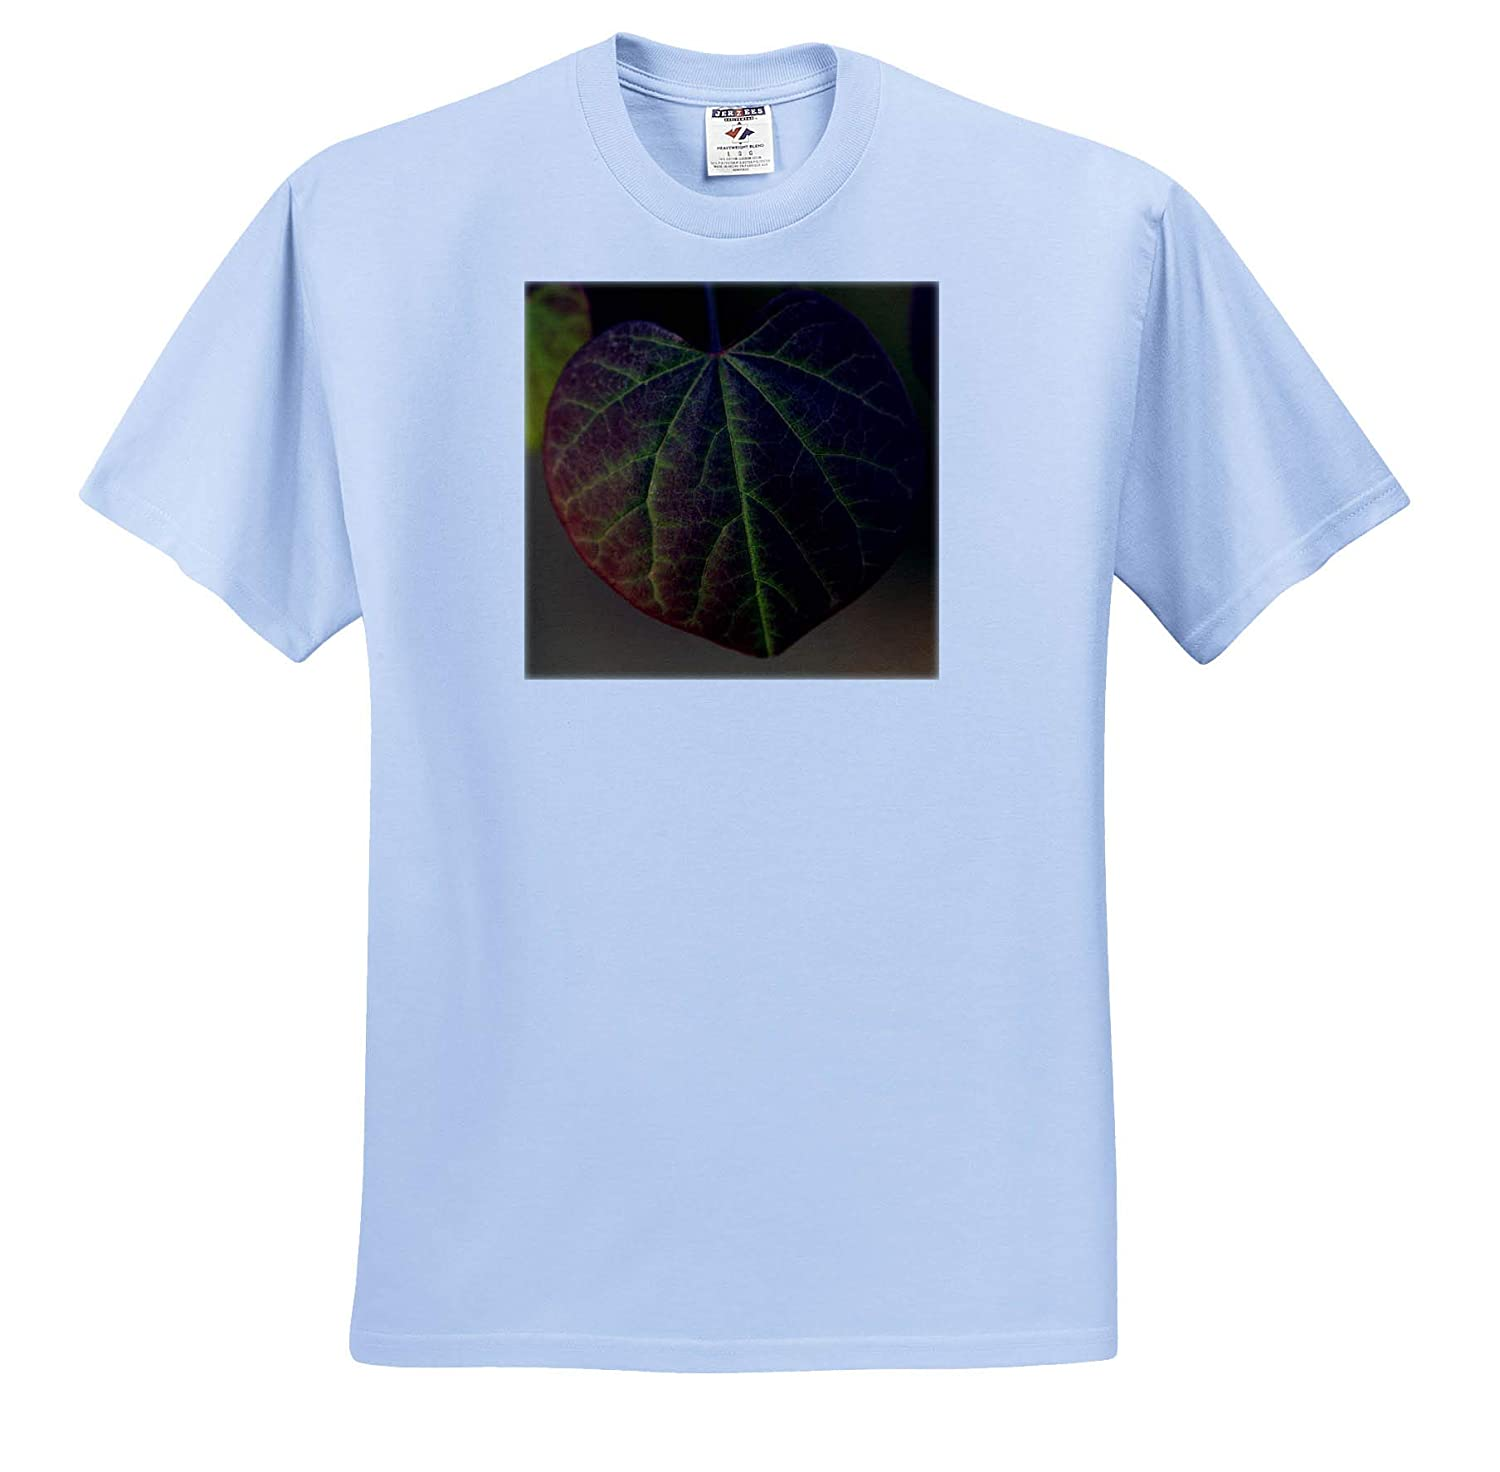 Plants ts/_312219 Macro Photograph of a Ruby Falls Weeping Eastern Redbud Leaf - Adult T-Shirt XL 3dRose Stamp City